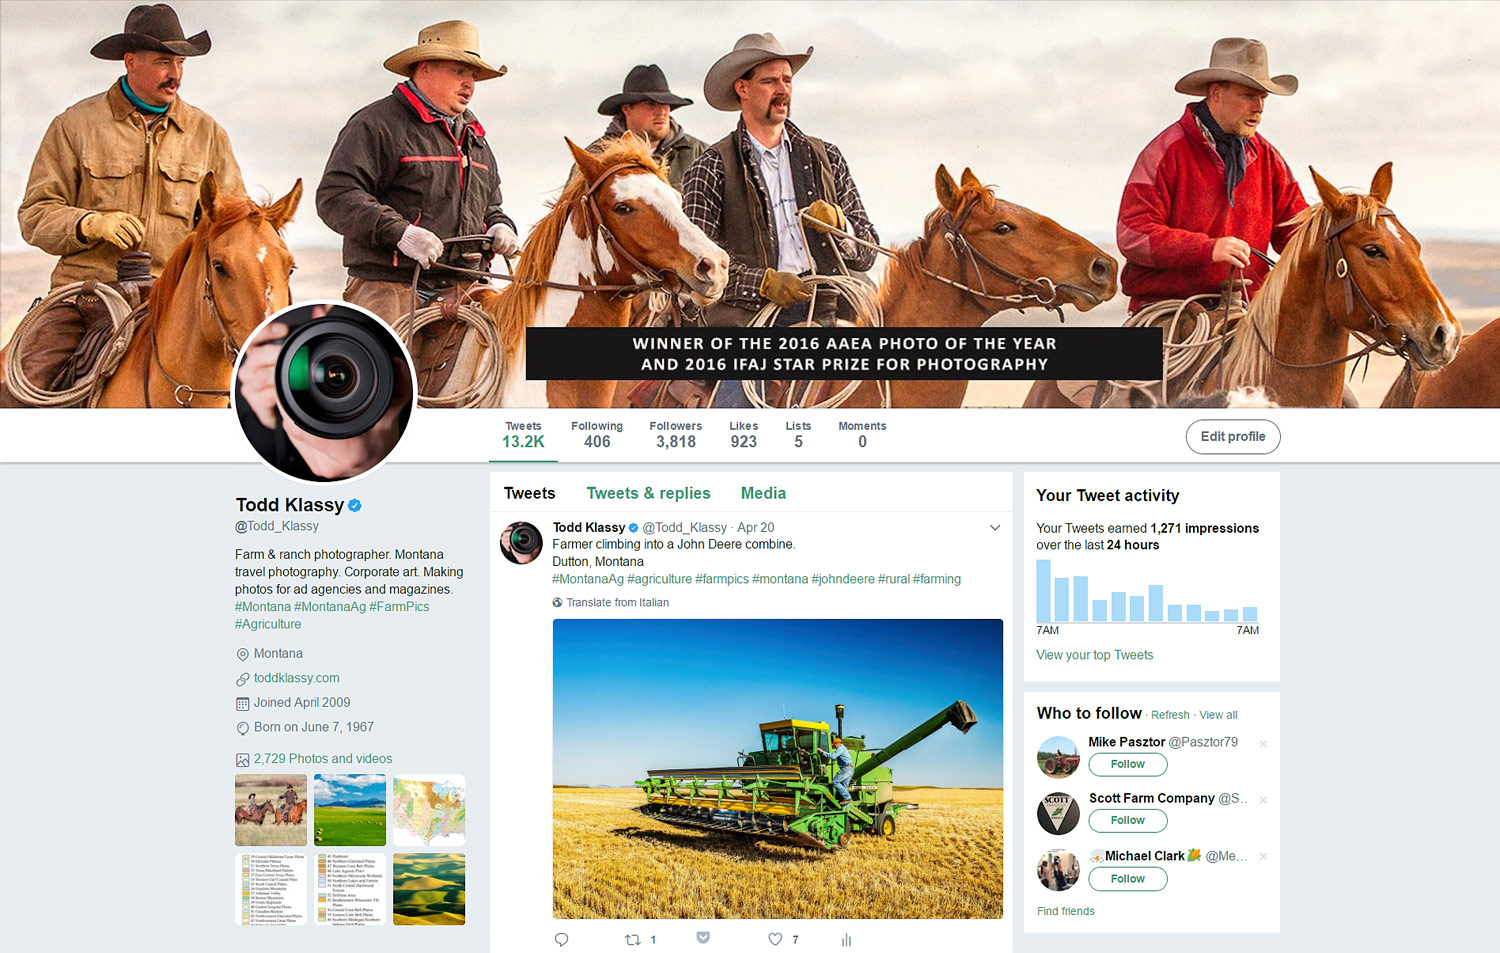 Twitter-Front-Page-for-Todd-Klasy-Agriculture-Photographer.jpg